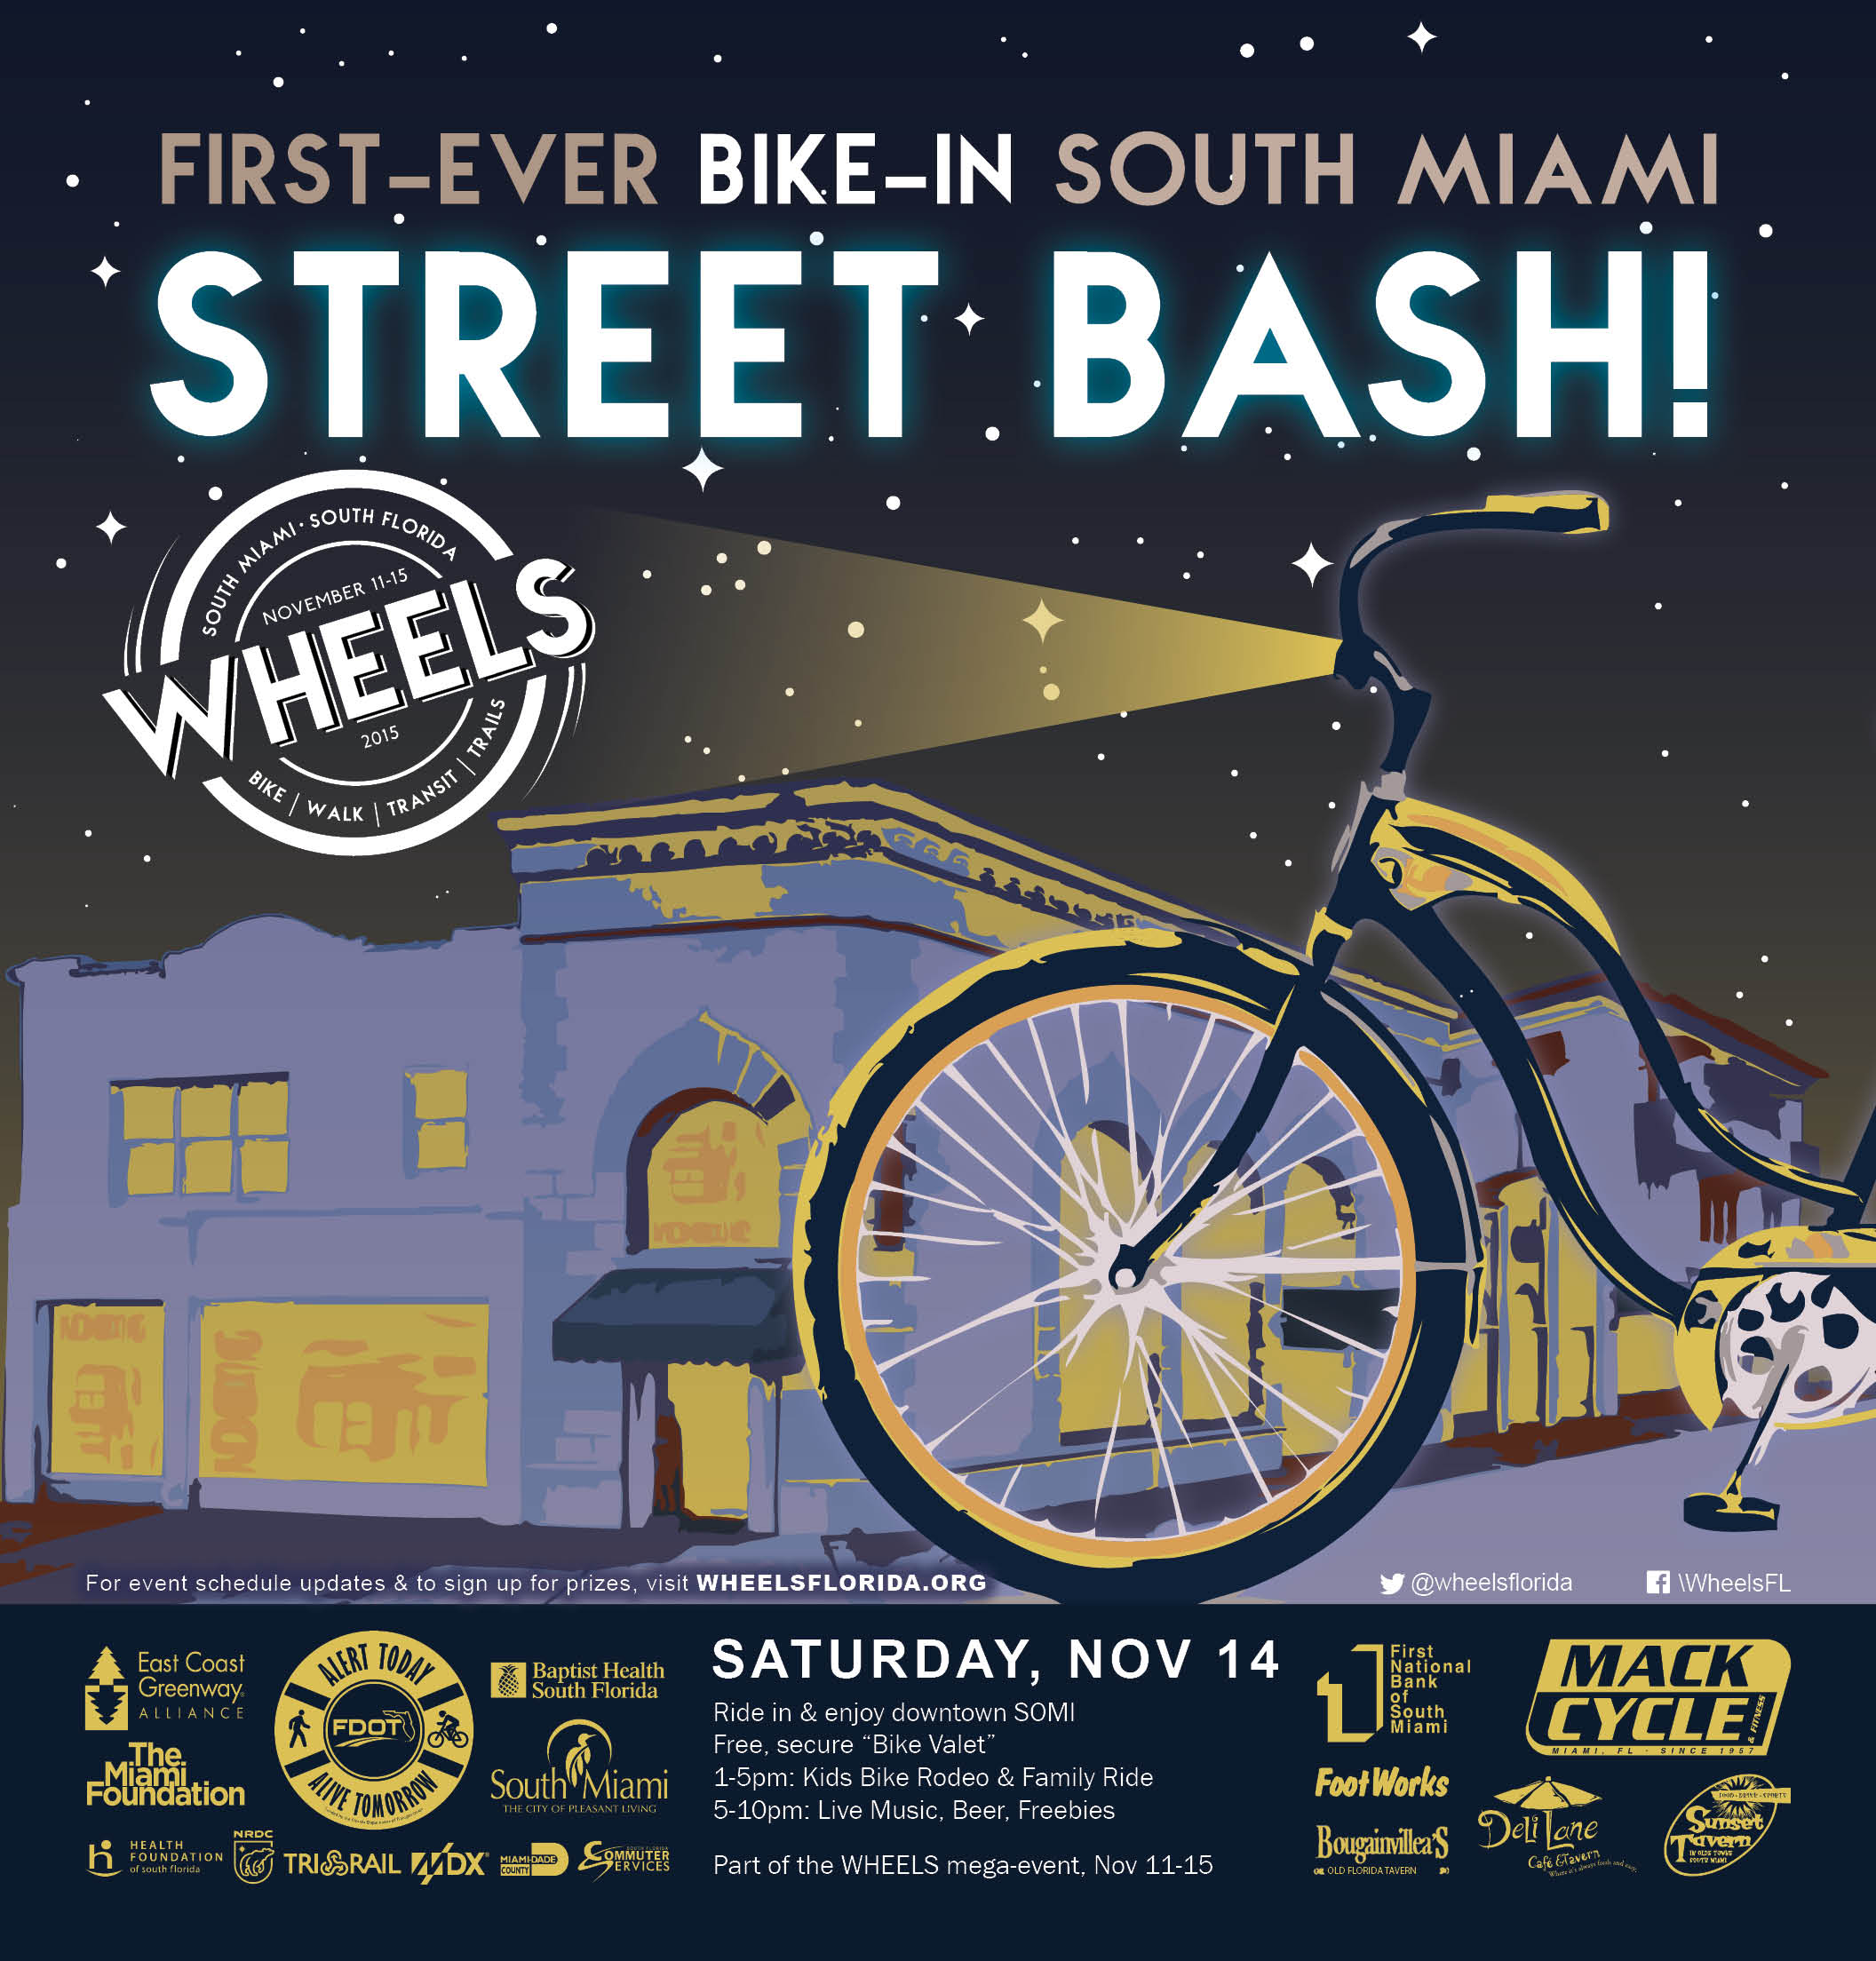 WHEELS_street bash (2).jpg